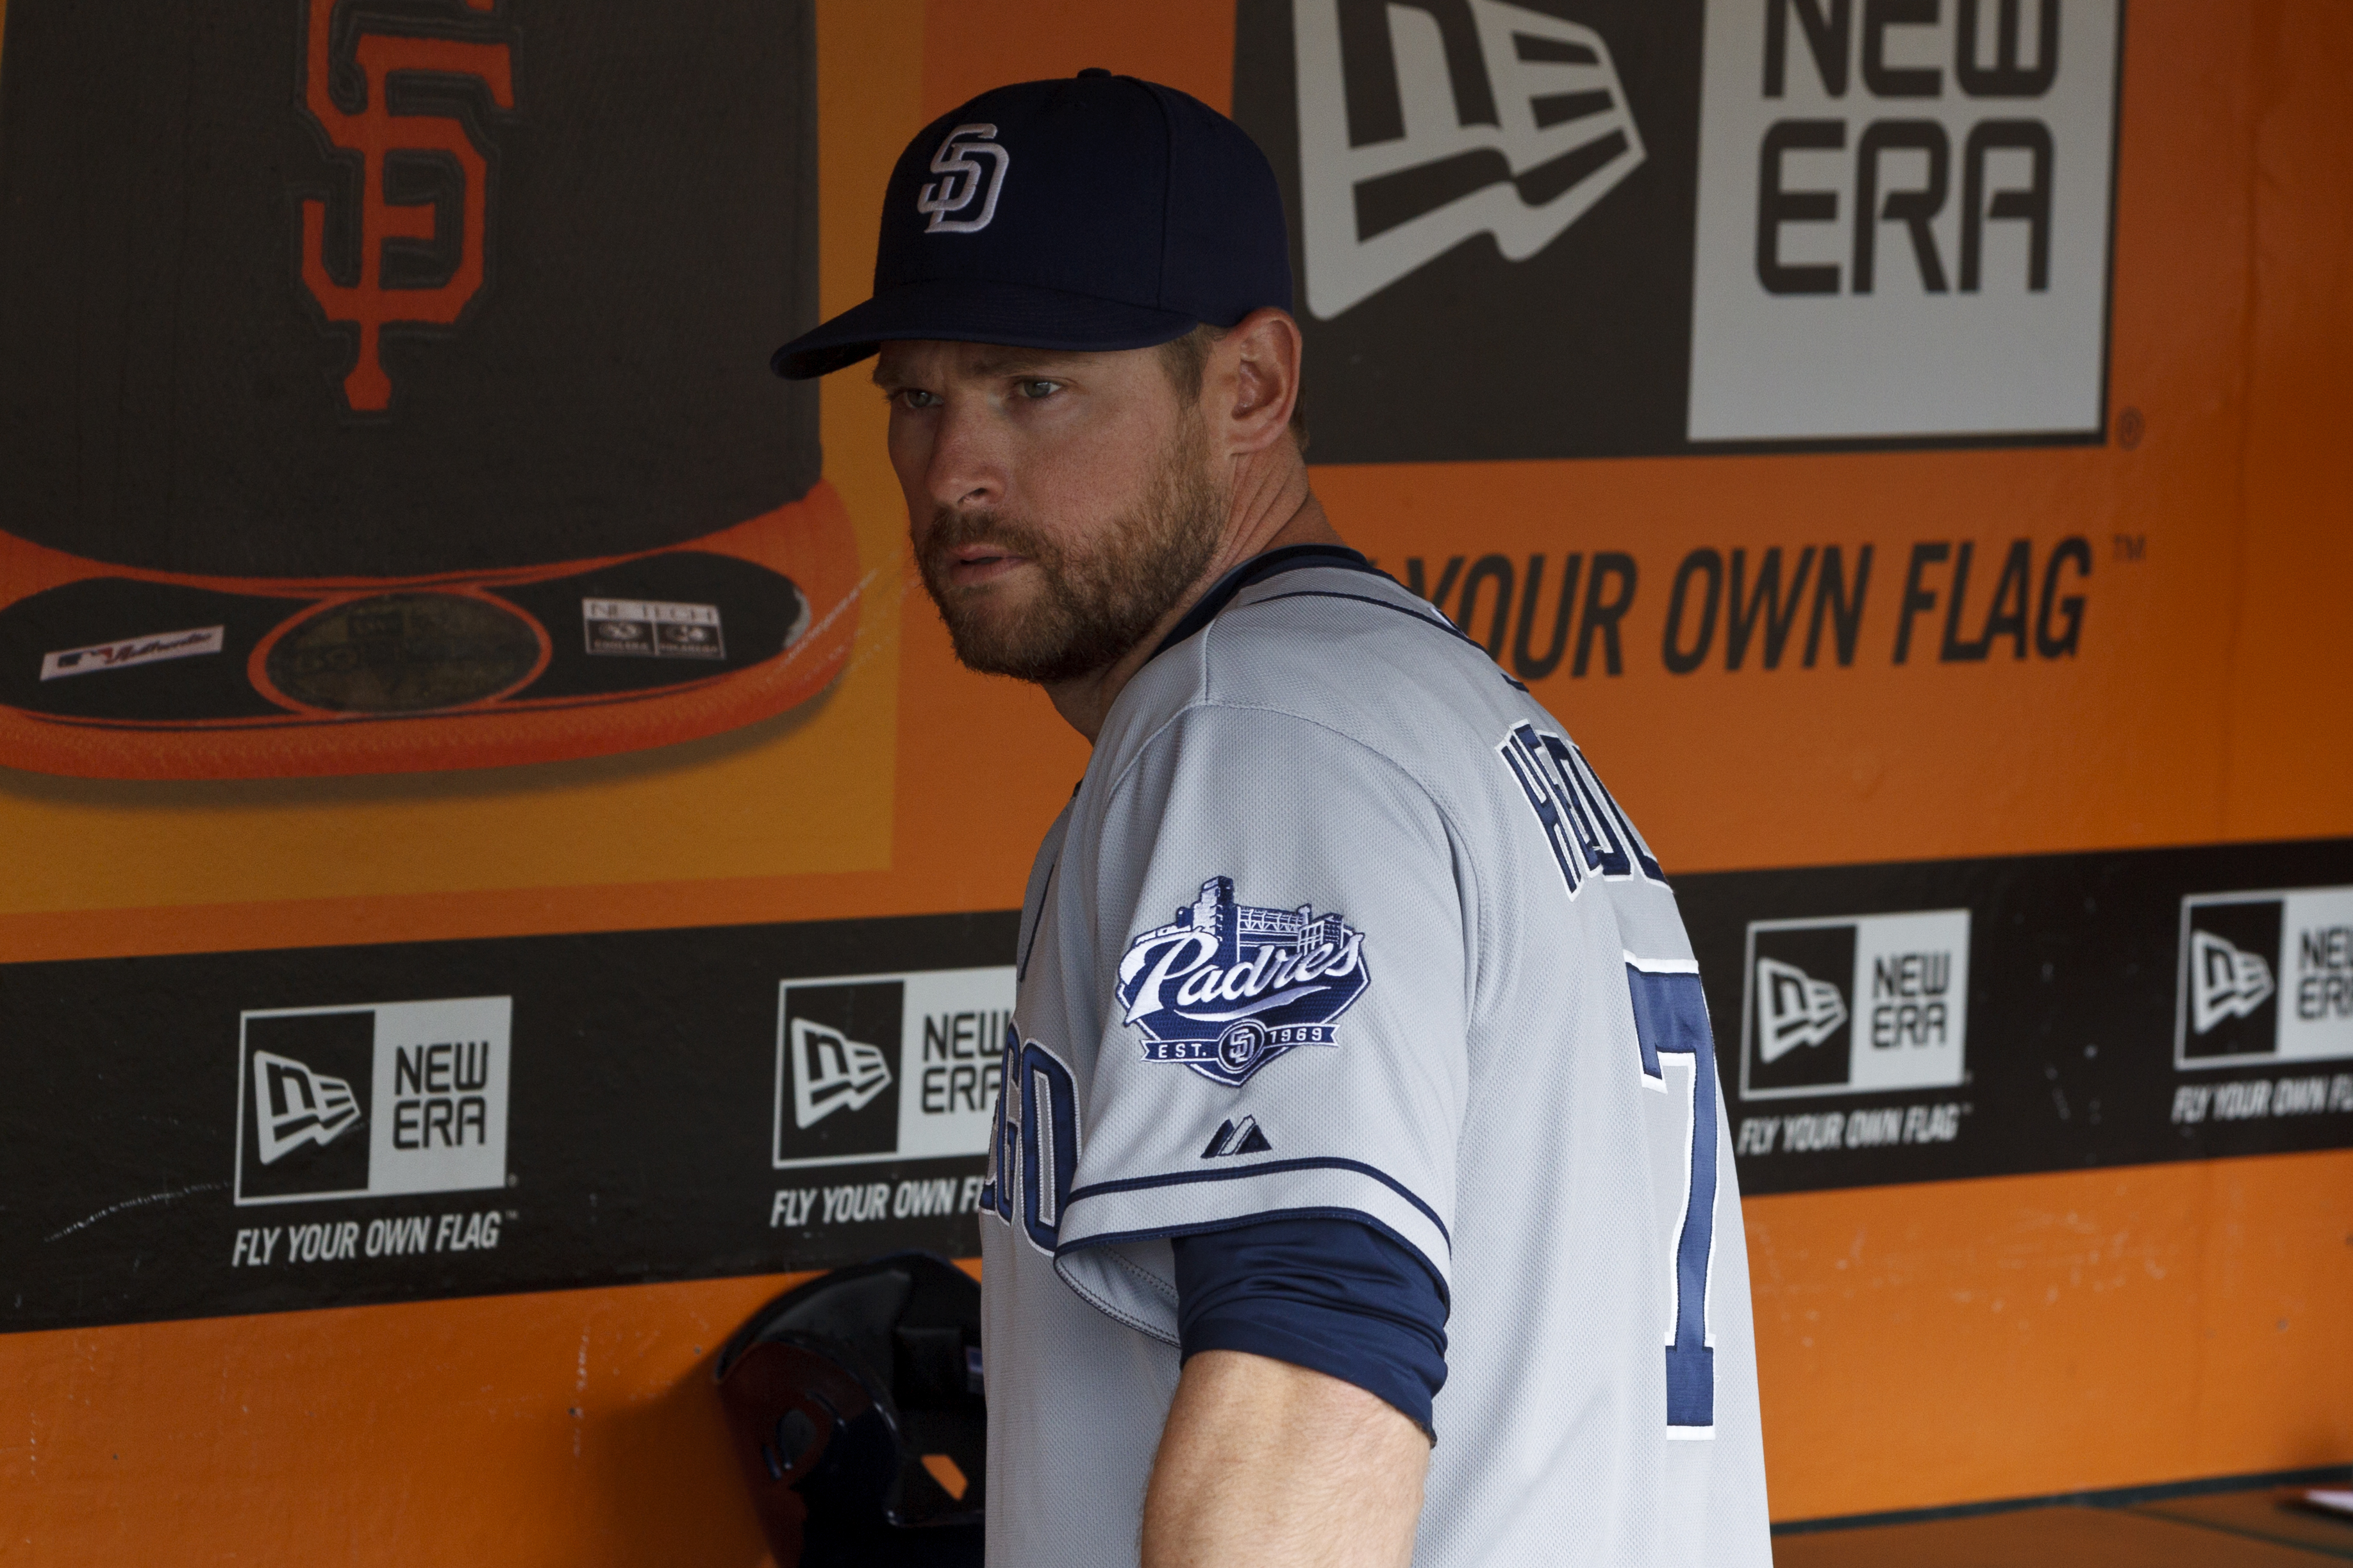 Chase Headley is due approximately $6 million the rest of this season.